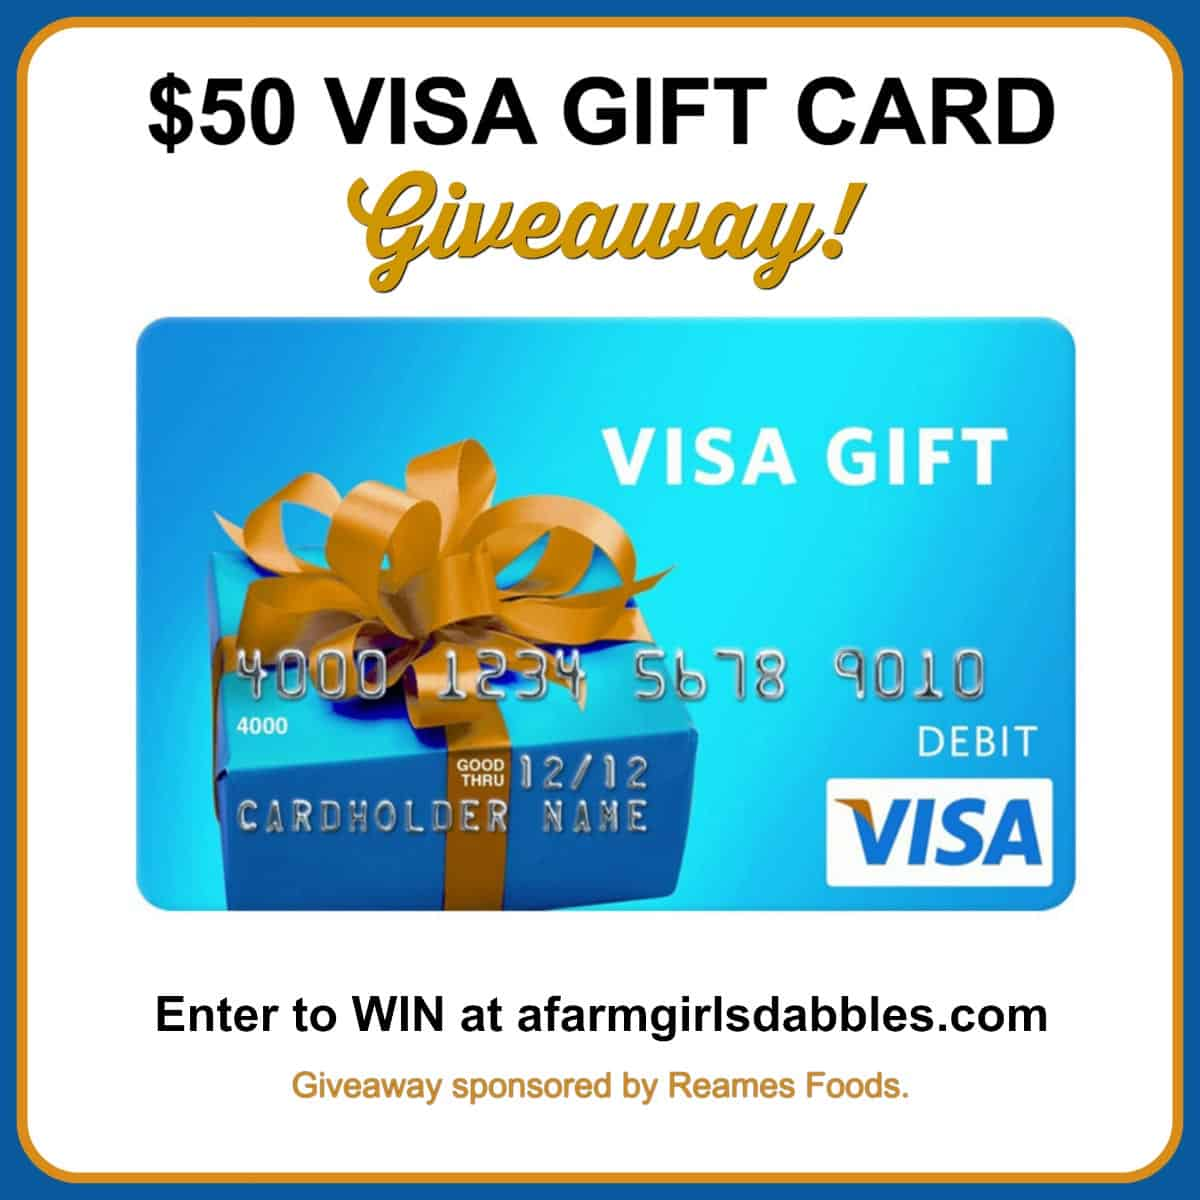 $50 VISA Gift Card Giveaway at afarmgirlsdabbles.com